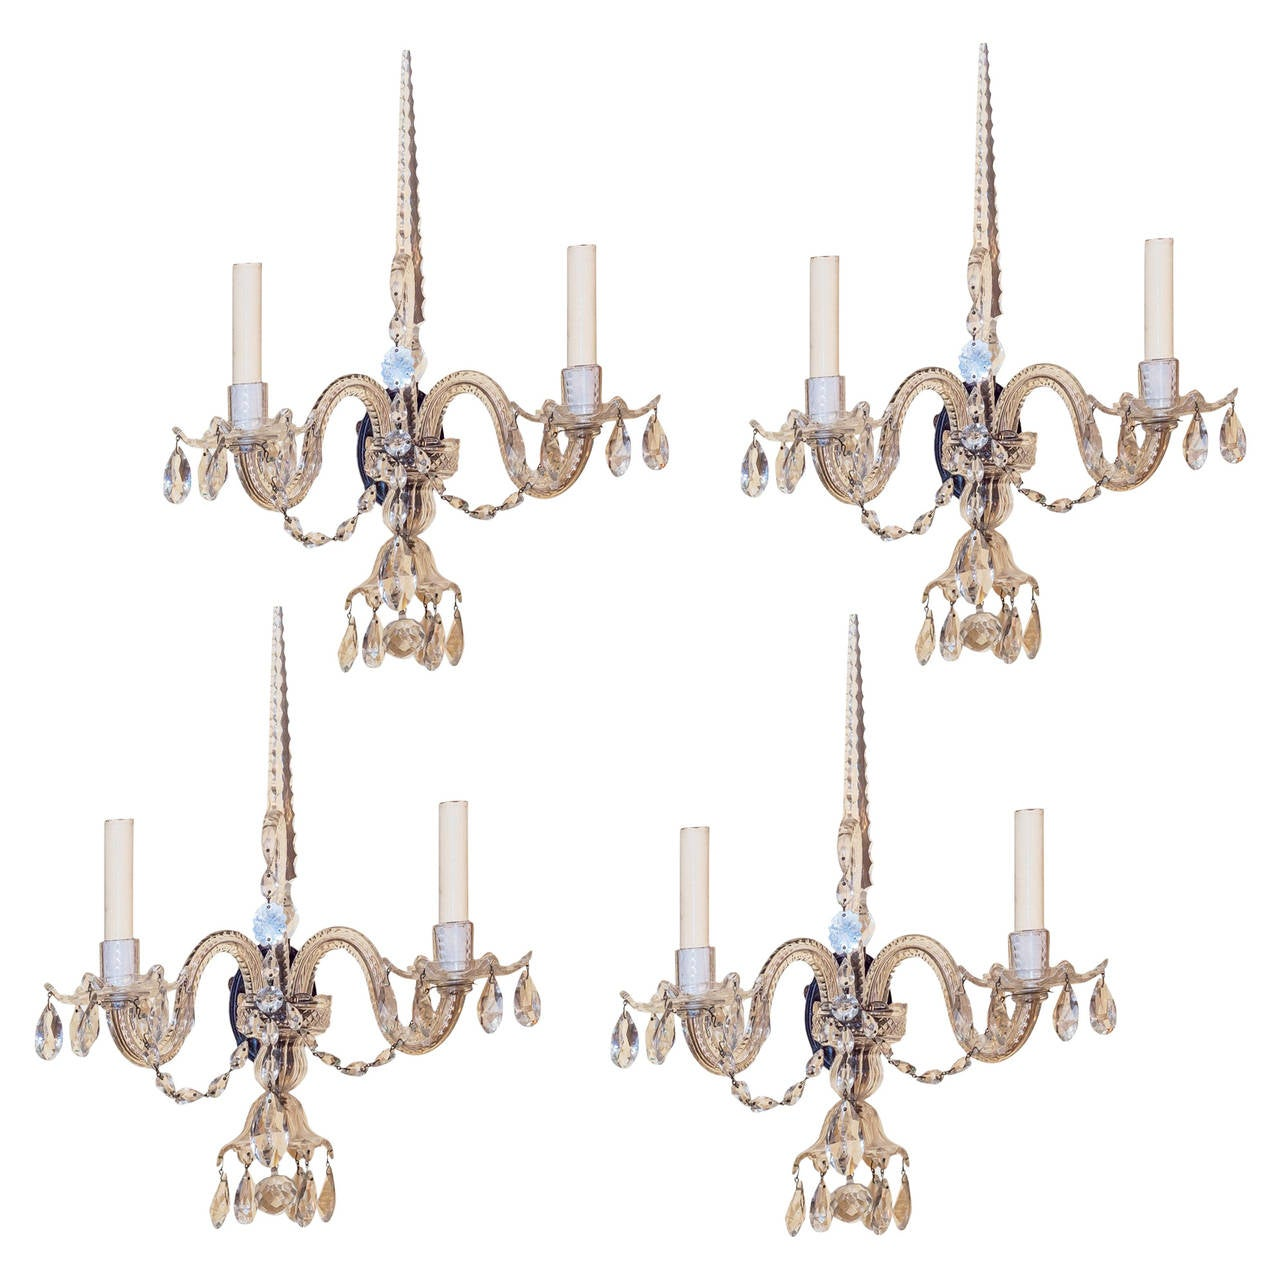 Set of Four Crystal Two-Light Wall Light Sconces